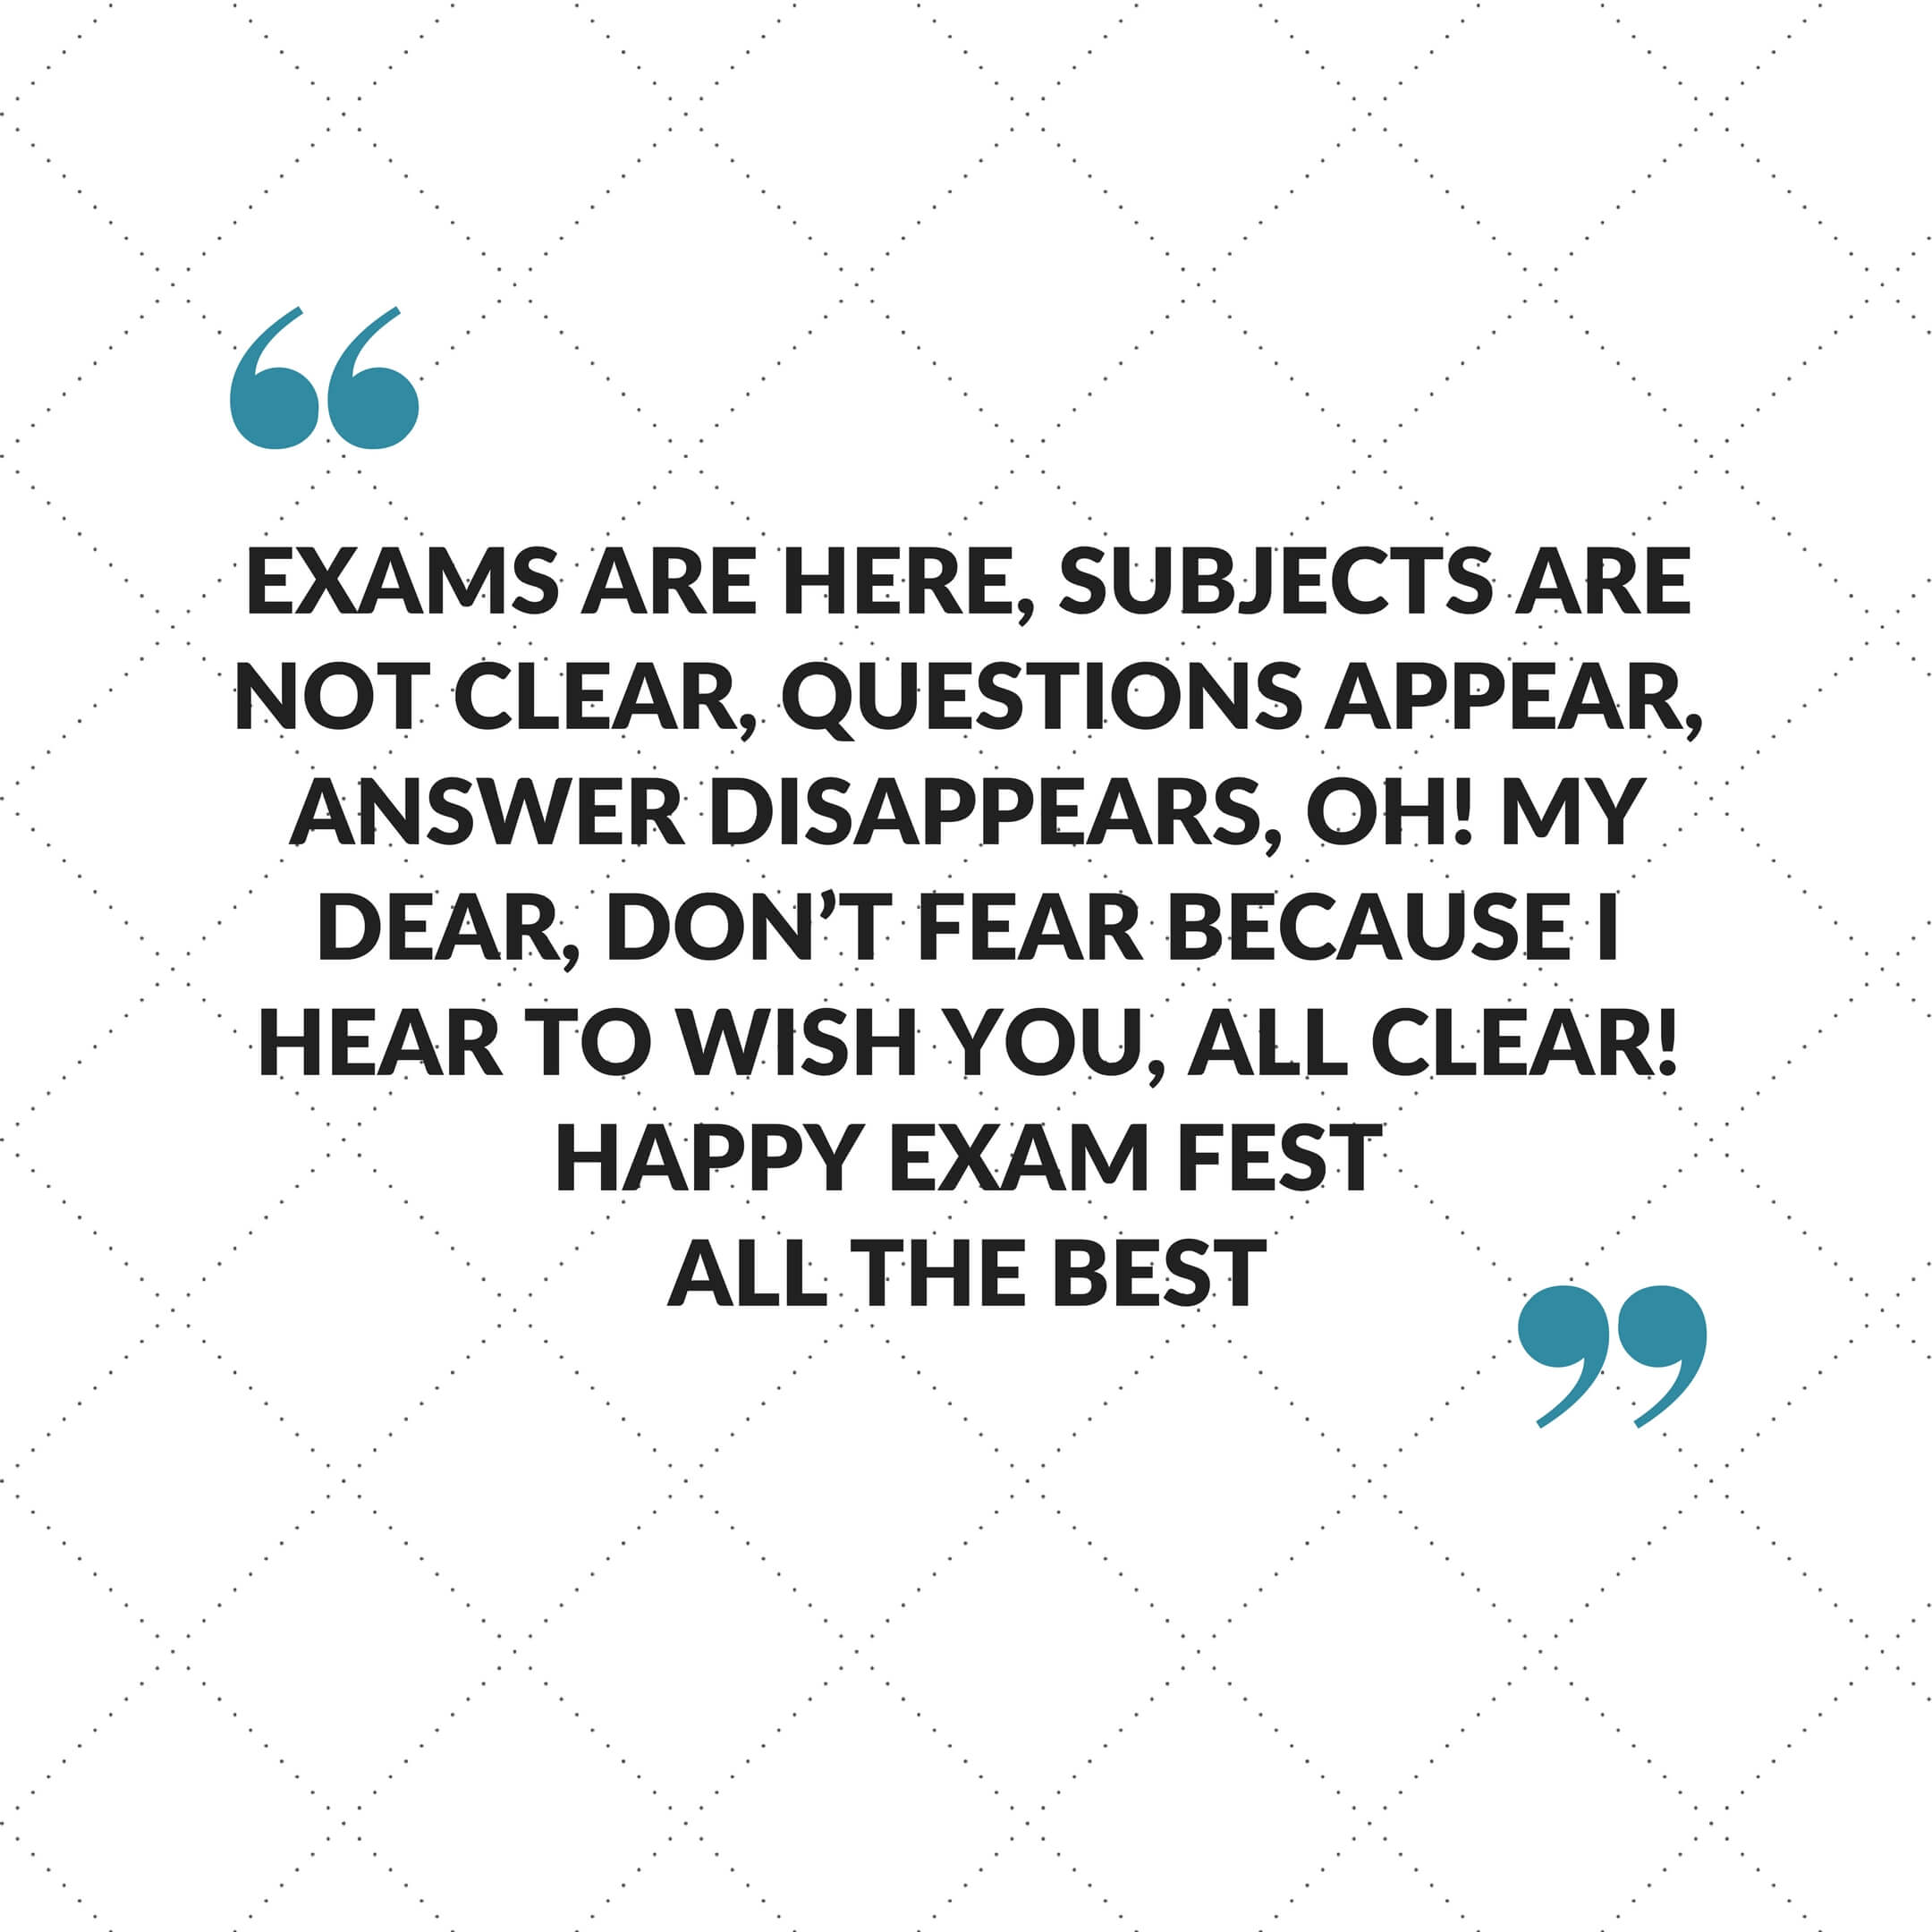 Wish Me Luck For My Exam Quotes: Best Of Luck Quotes, All The Best Quotes And Status Messages